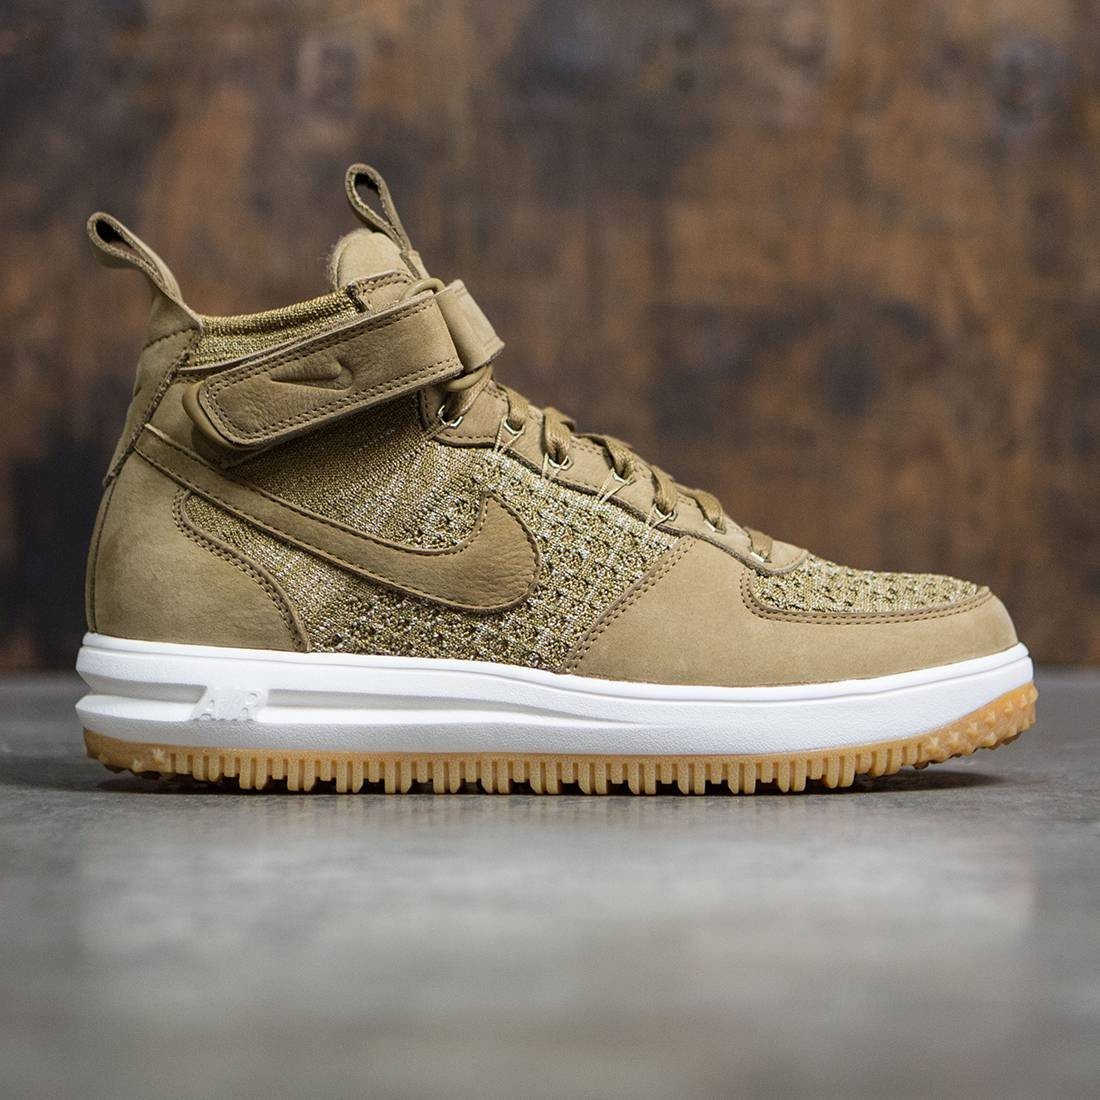 low priced 999c4 43ab3 Nike Men Lunar Force 1 Flyknit Workboot (golden beige   sail-olive flak)